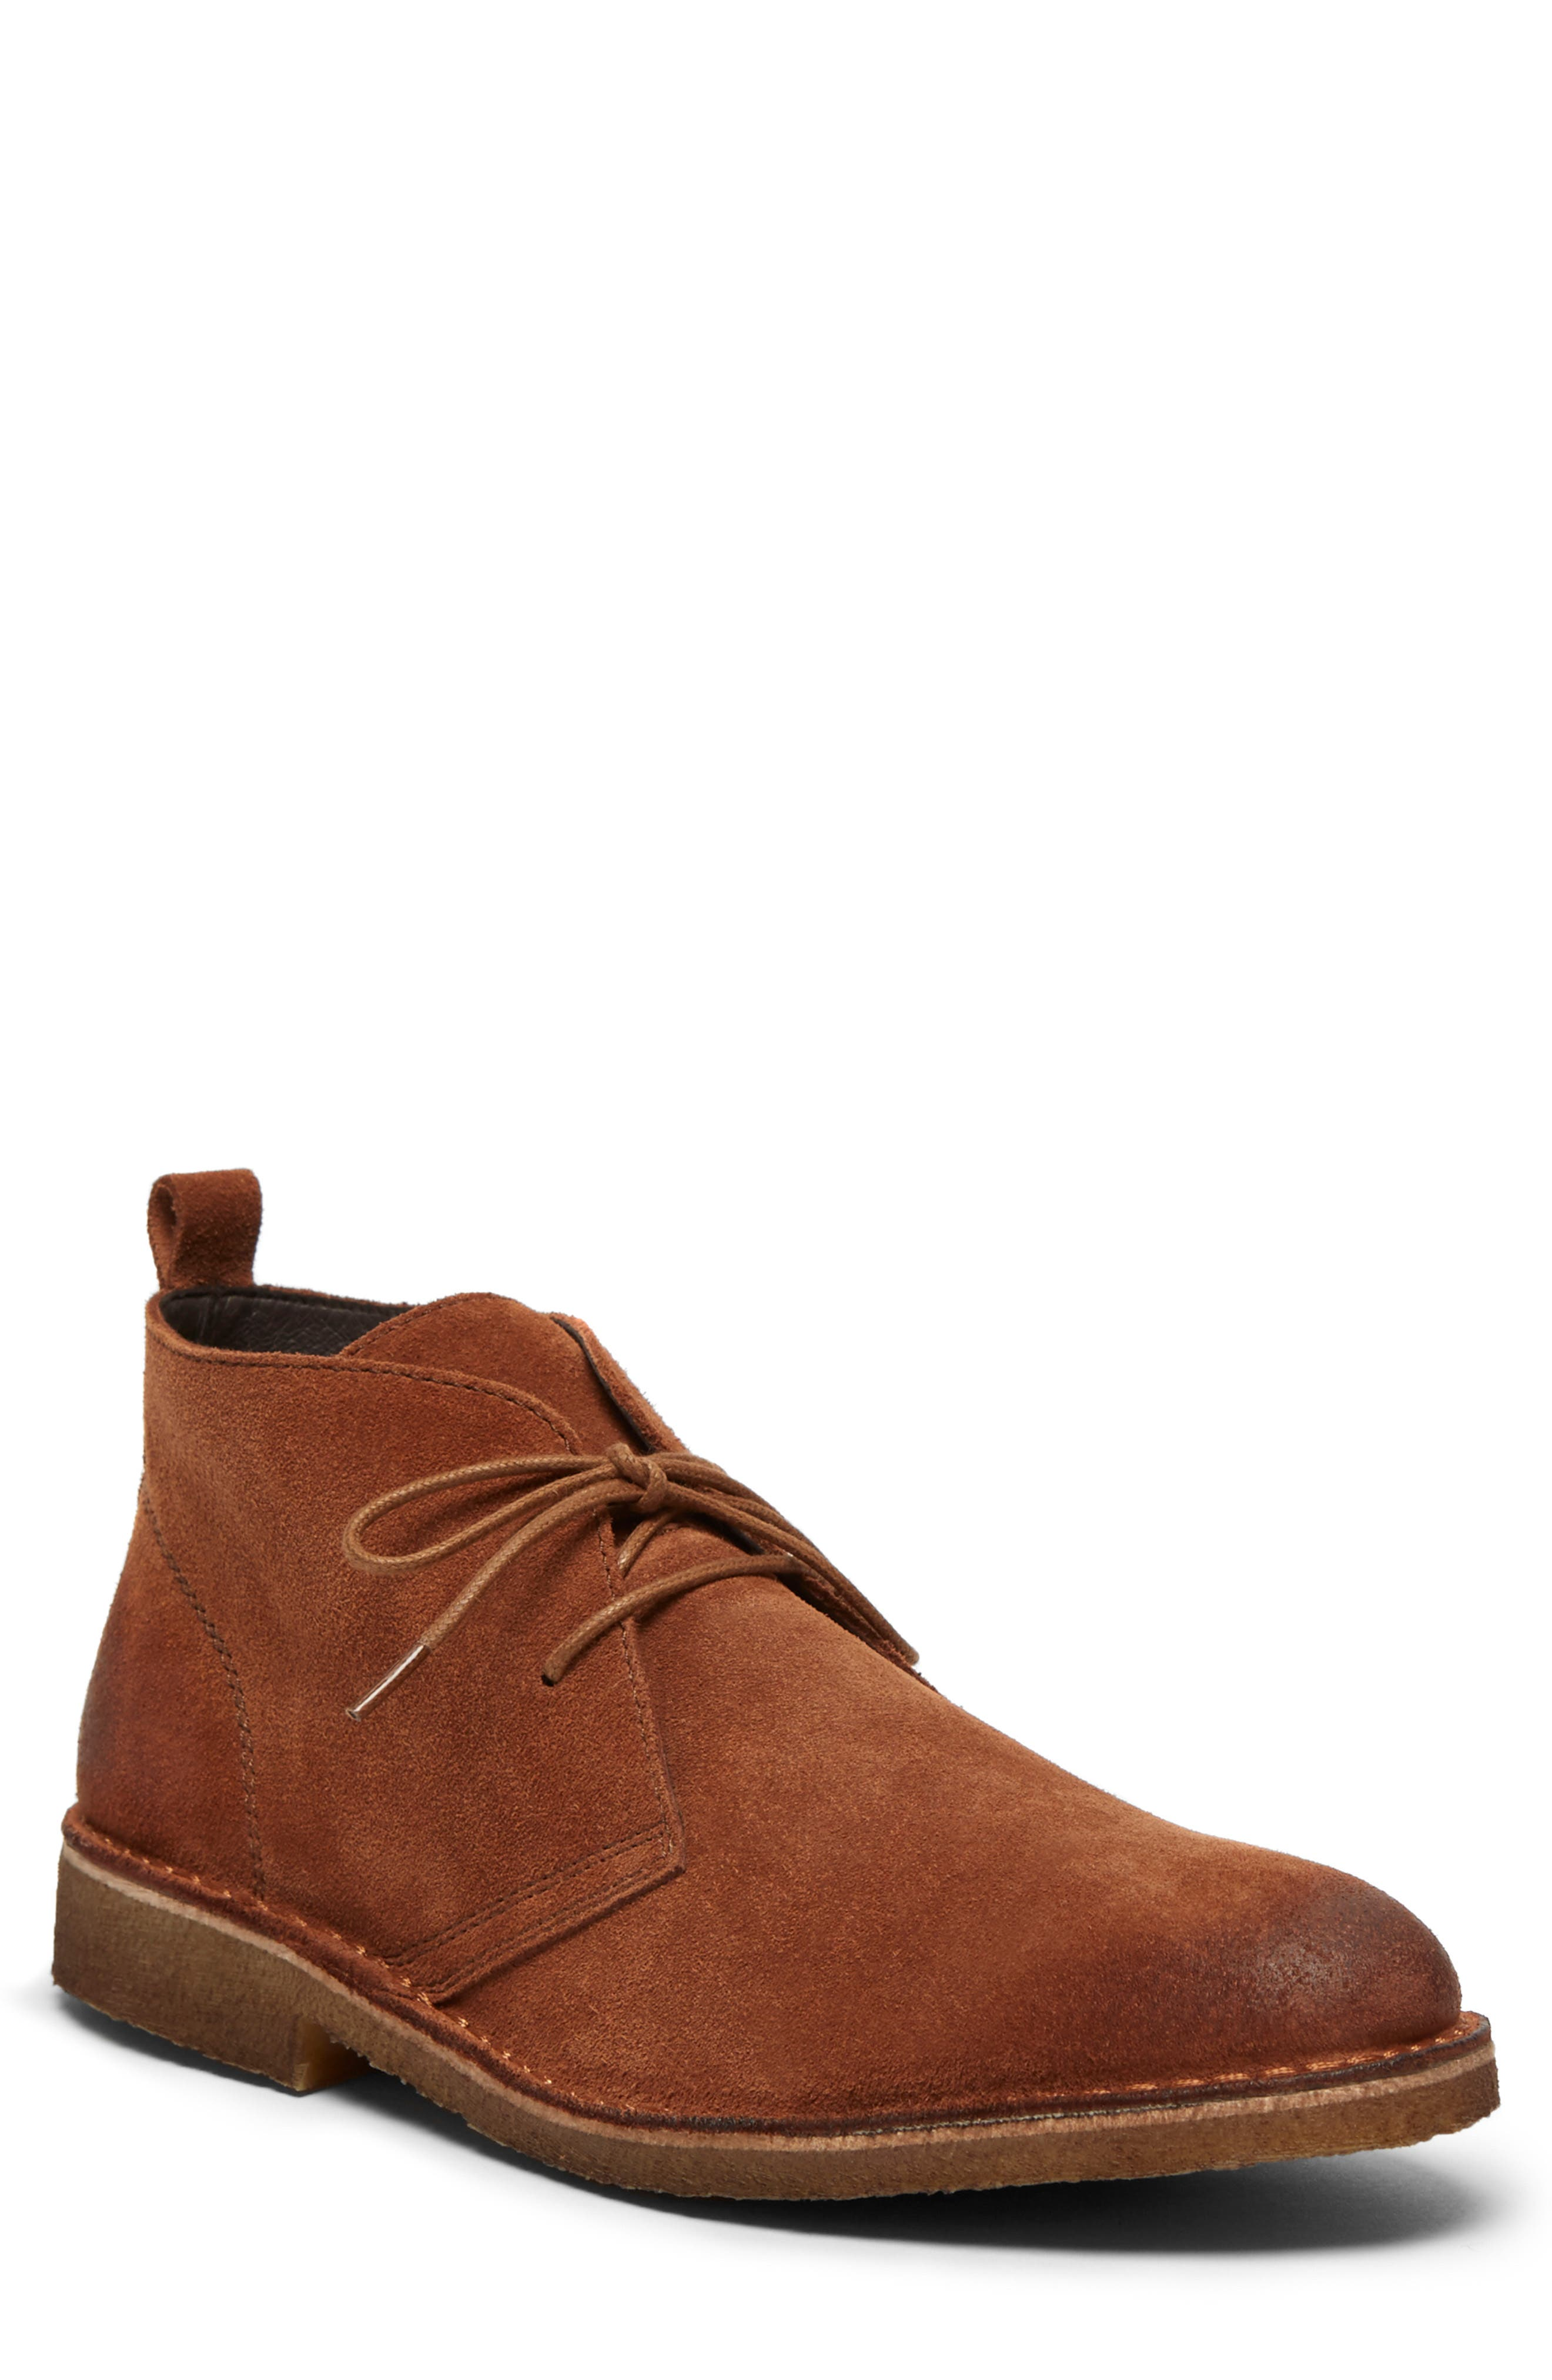 Hewitt Chukka Boot,                             Alternate thumbnail 4, color,                             RUST SUEDE